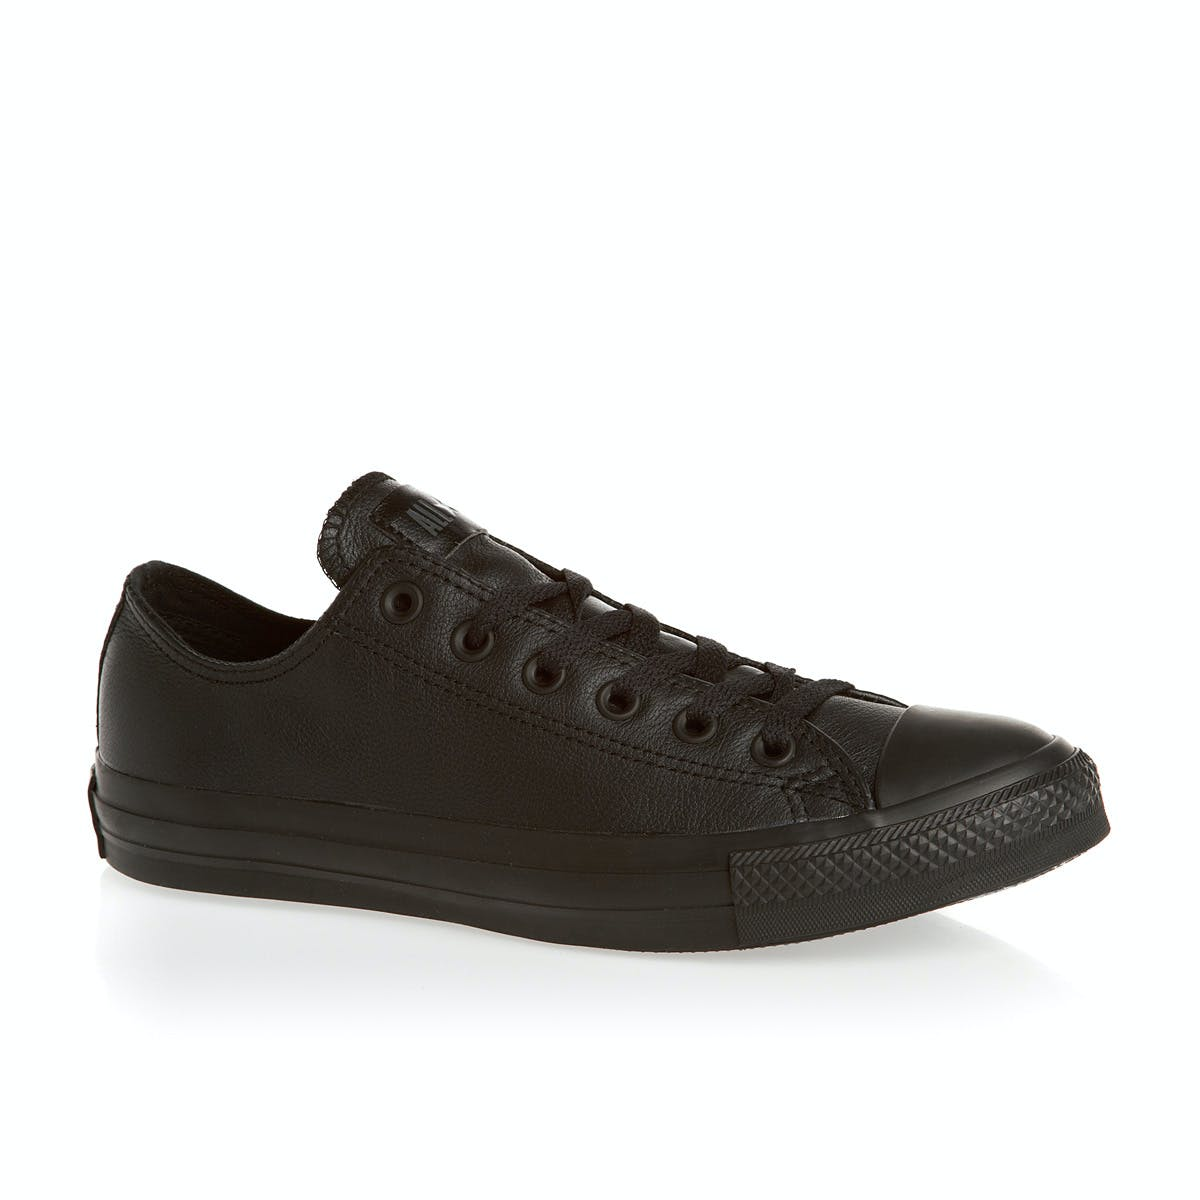 36a8b46a6f7d6 Converse Chuck Taylor All Stars Leather Shoes - Free Delivery options on  All Orders from Surfdome UK